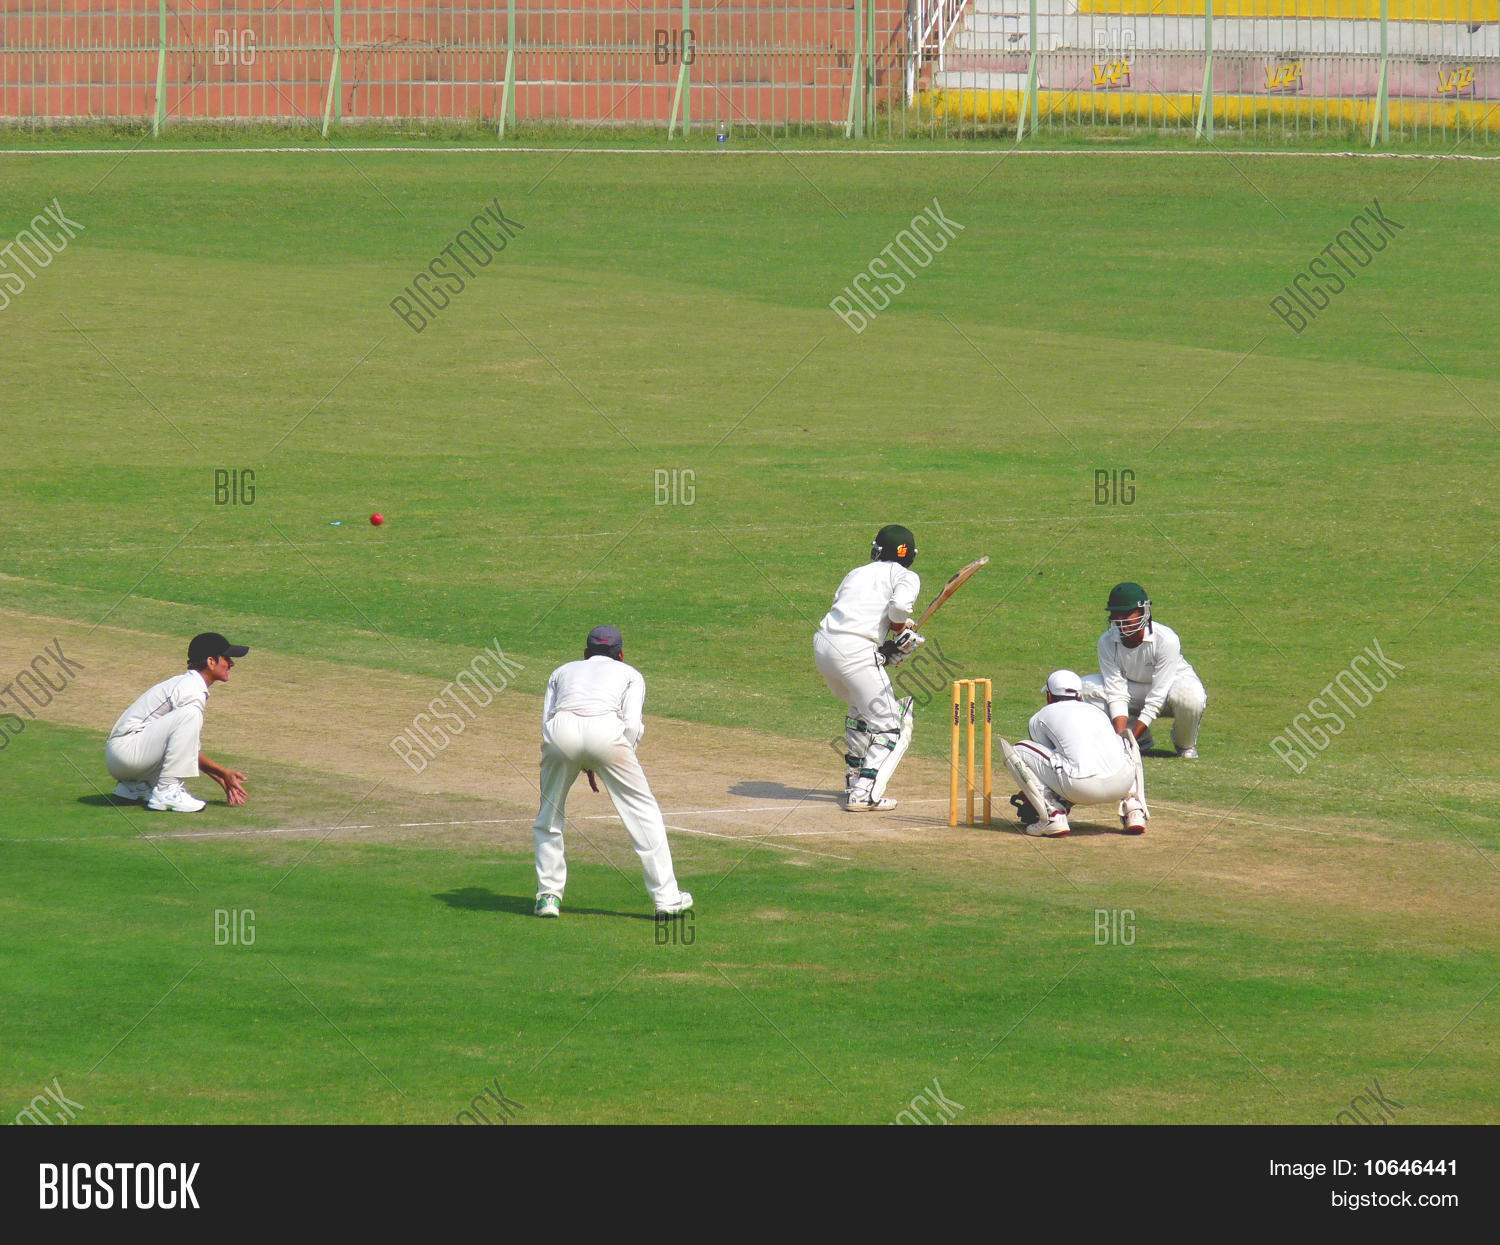 Batsman Under Pressure Image & Photo (Free Trial) | Bigstock